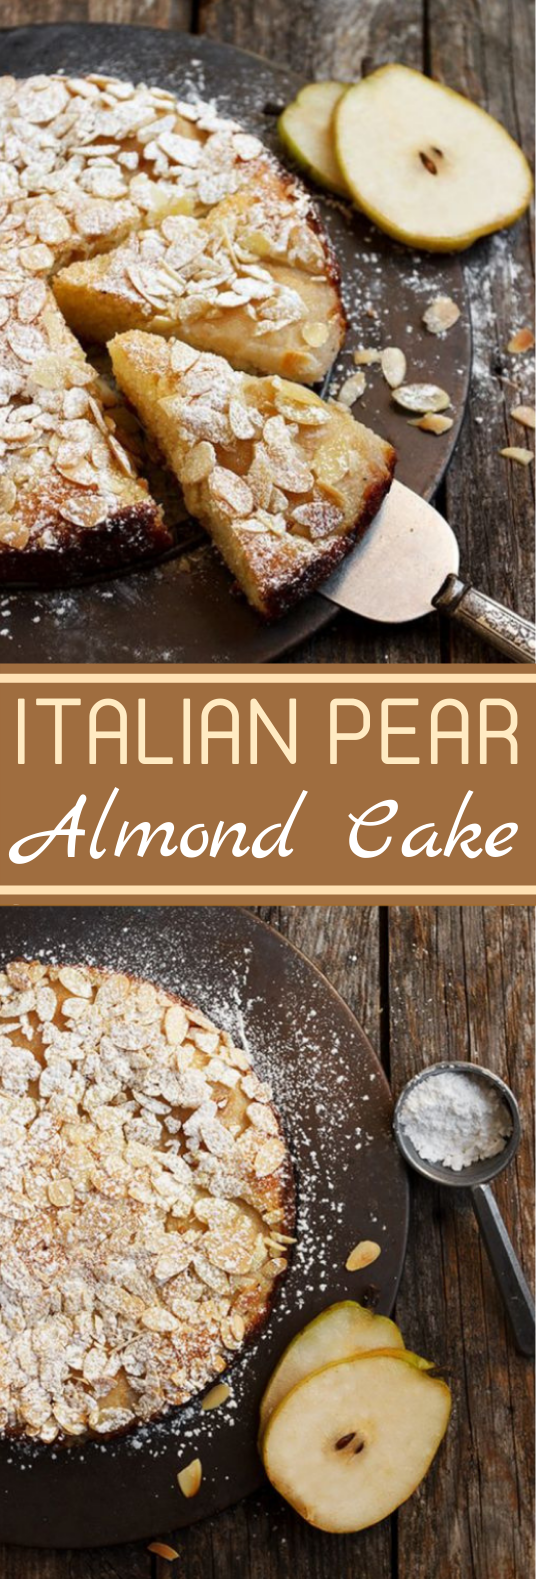 Italian Pear Almond Cake #desserts #cake #baking #easy #pie